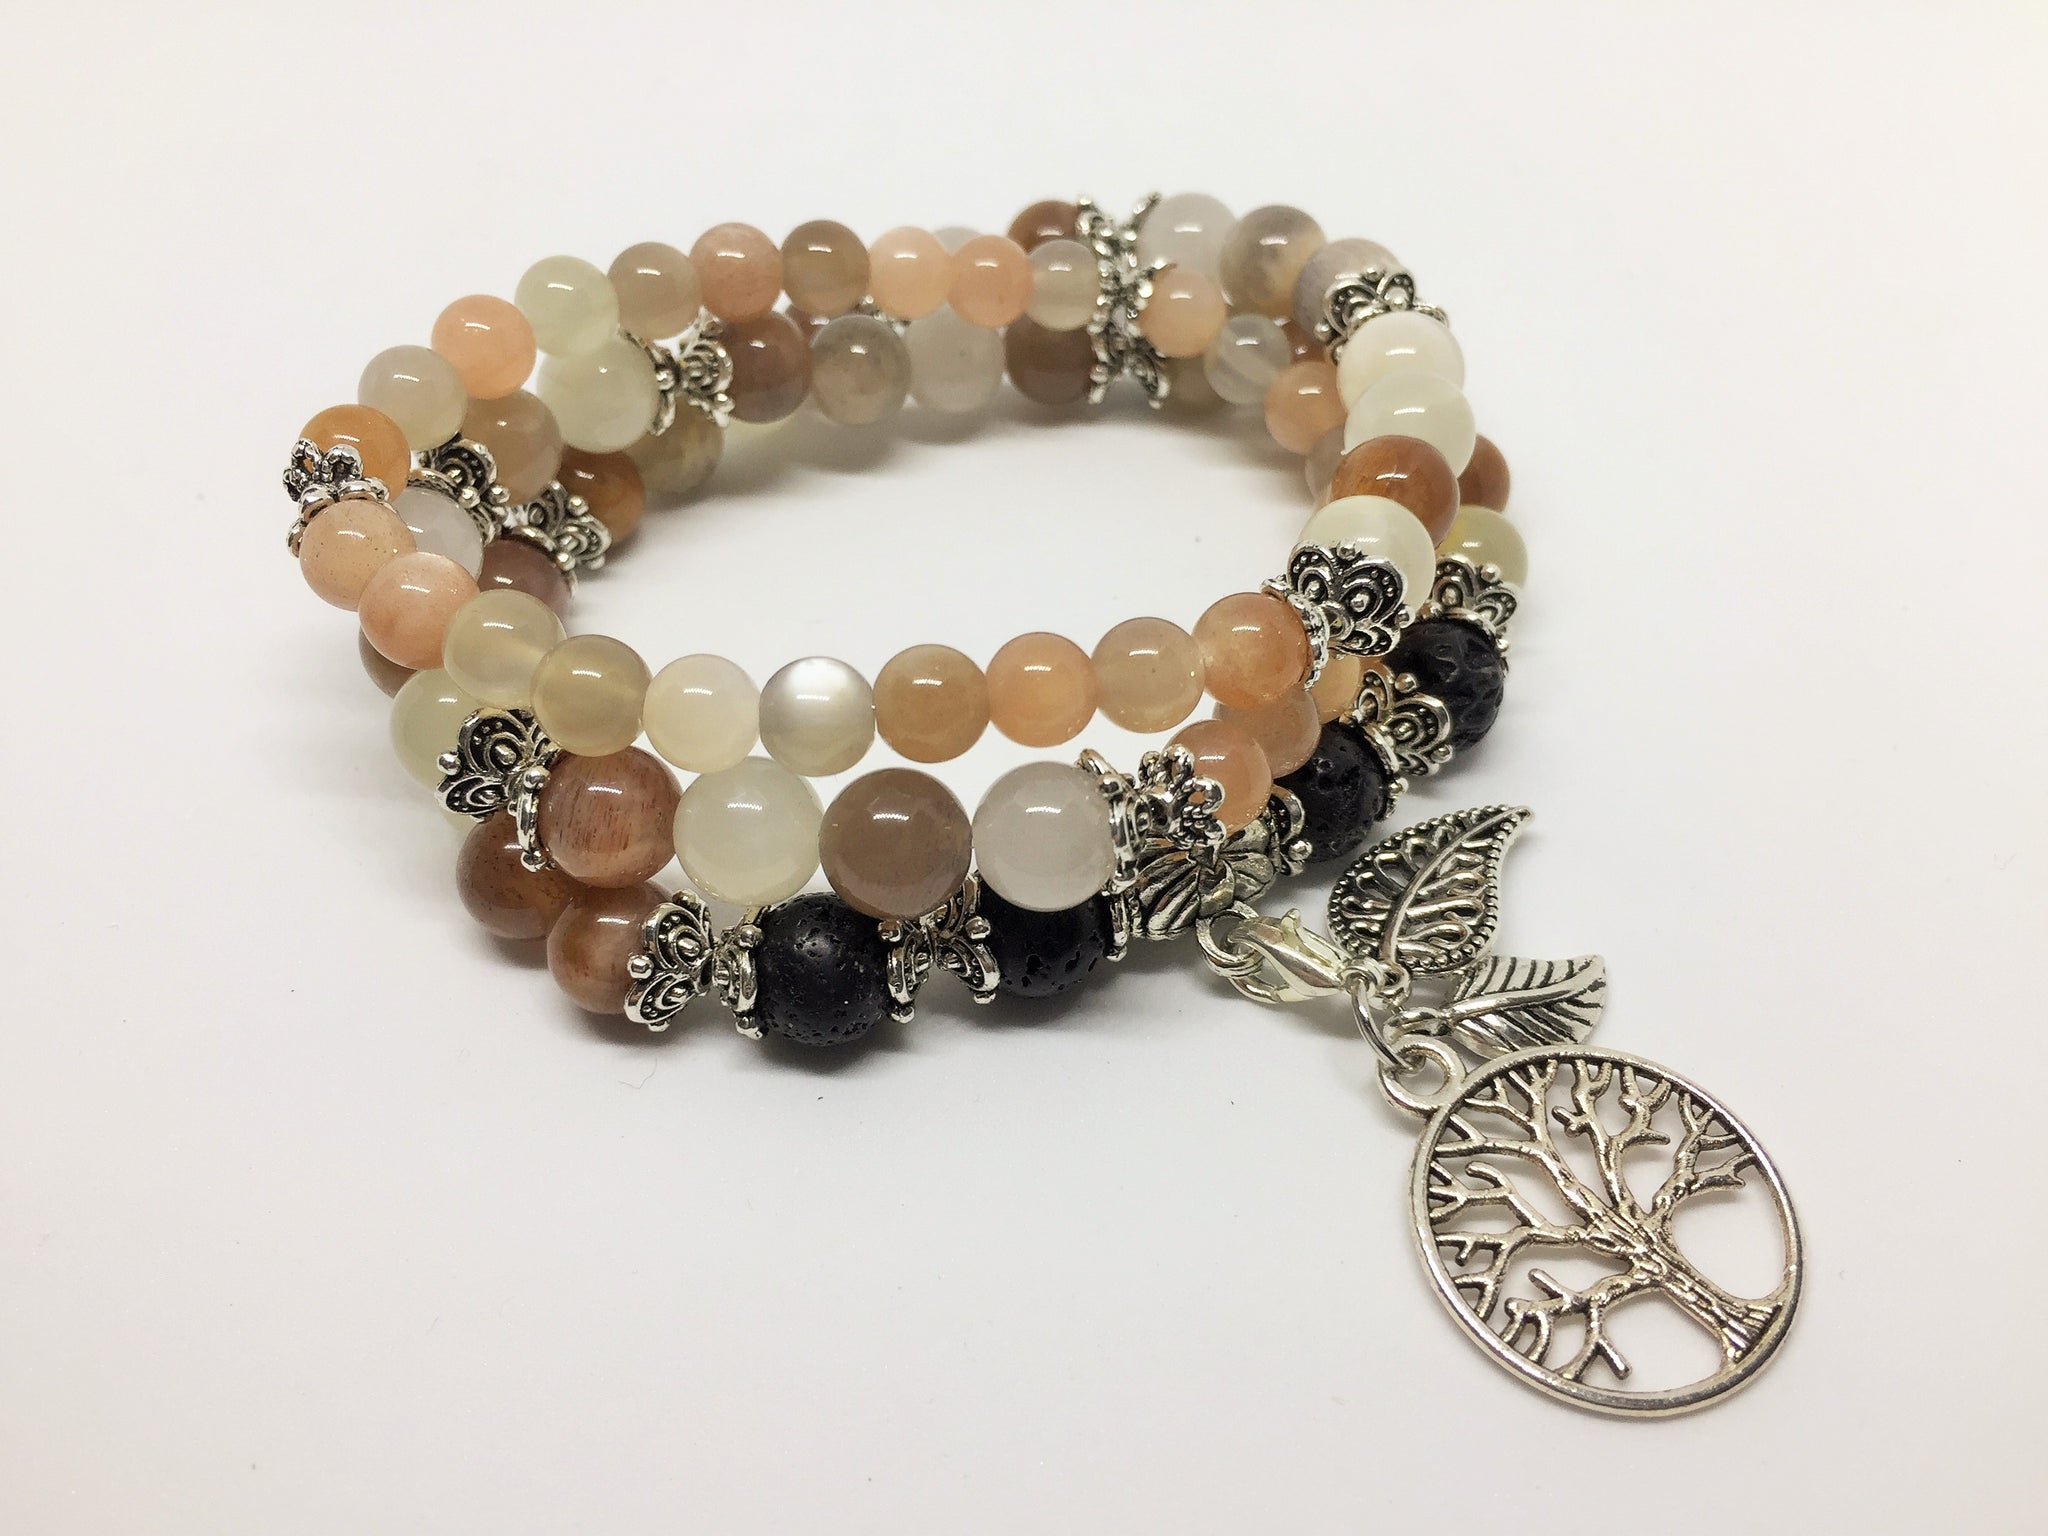 Peach Moonstone Calming & Balancing CrystalAroma Jewellery